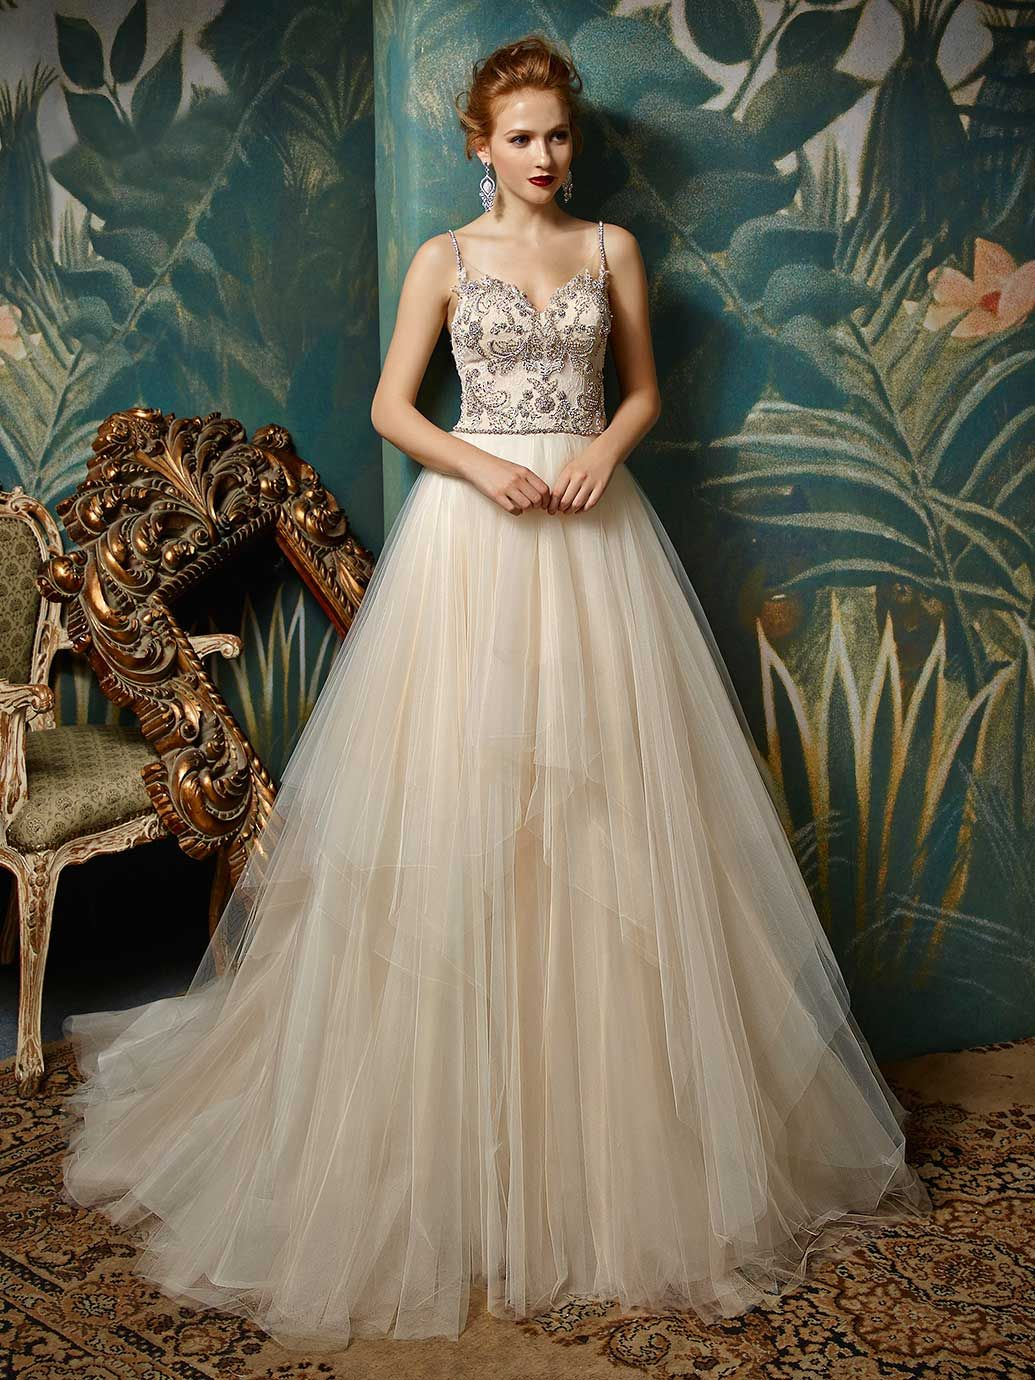 2017 blue by enzoani jovita available at uptown bridal www 2017 blue by enzoani jovita available at uptown bridal uptownbrides ombrellifo Choice Image